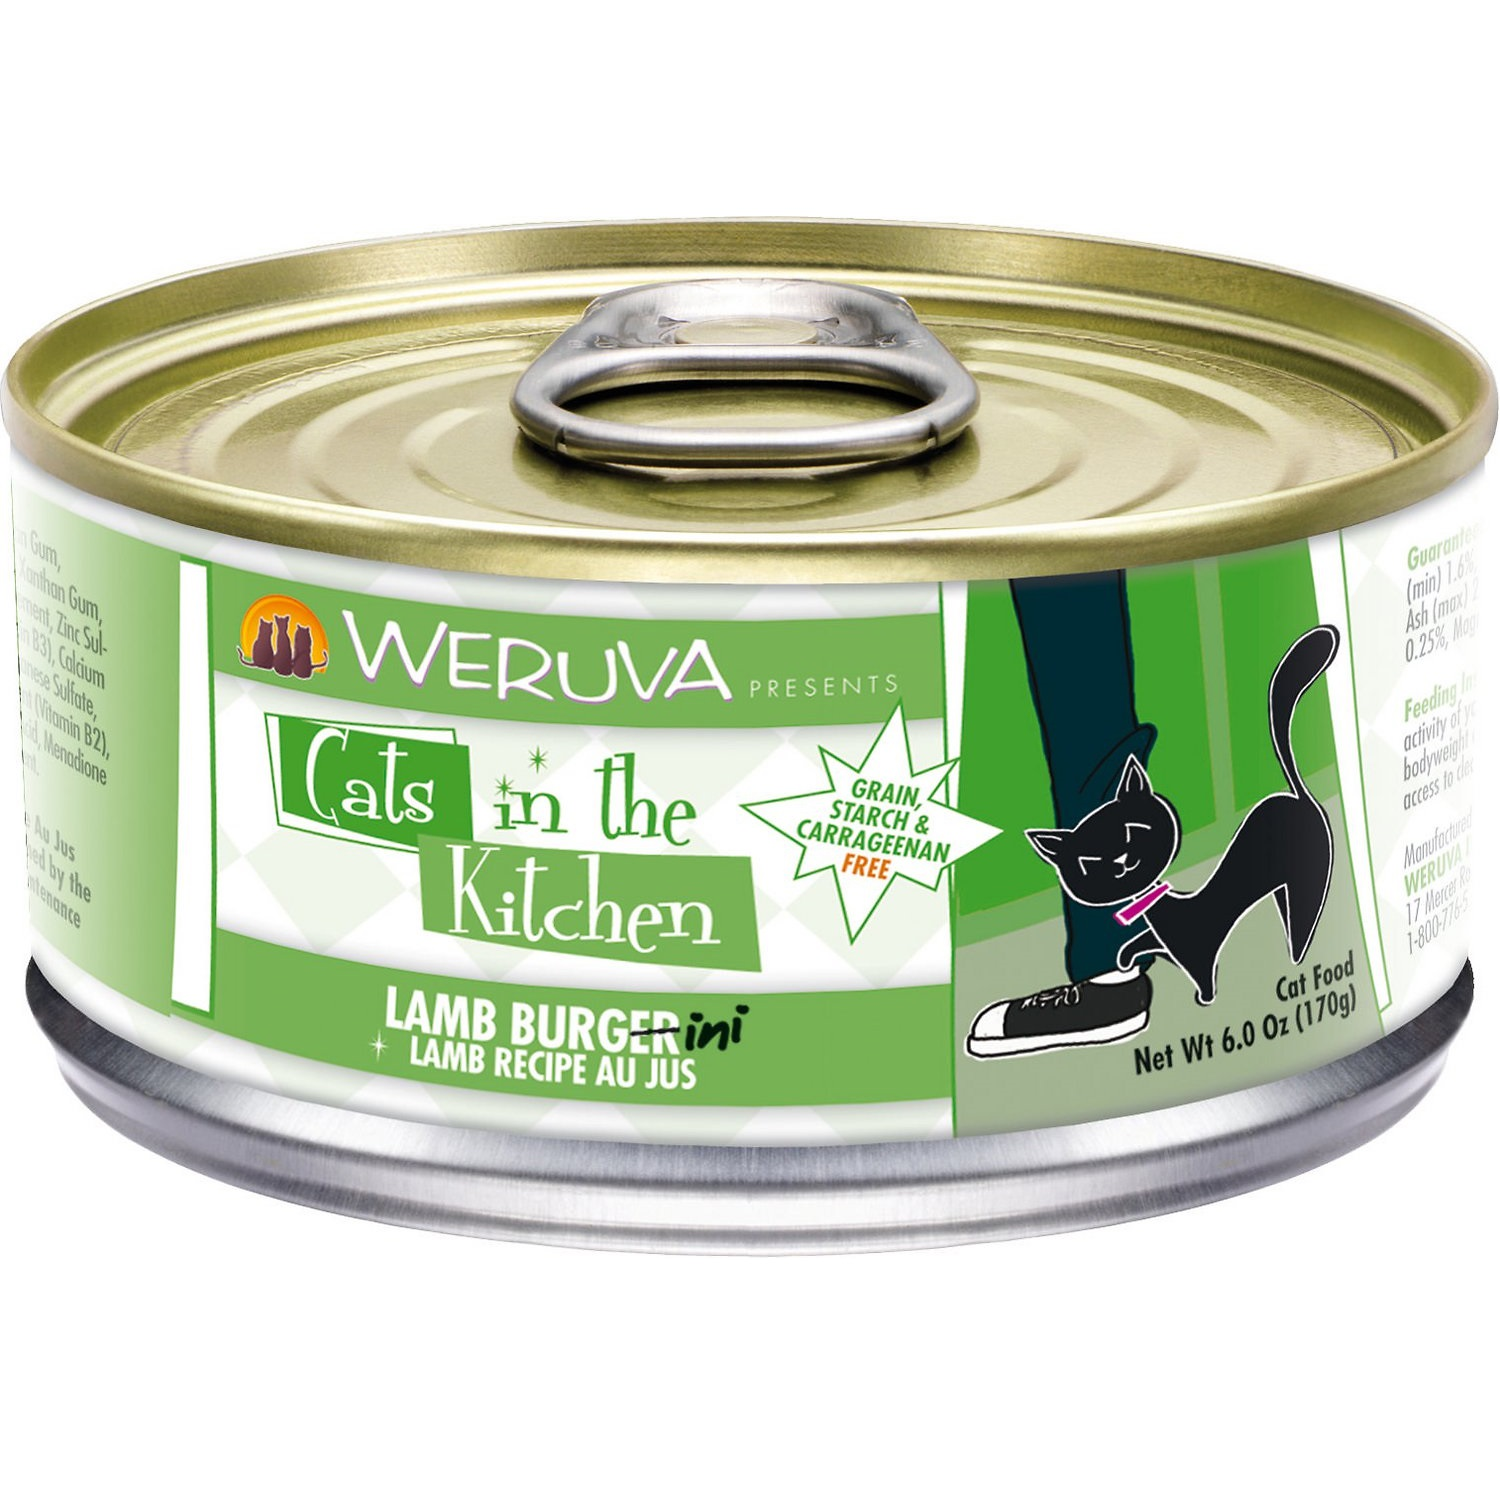 Weruva Cats in the Kitchen 'Lamb Burgini' Lamb Au Jus Grain-Free Canned Cat Food 6z, 24